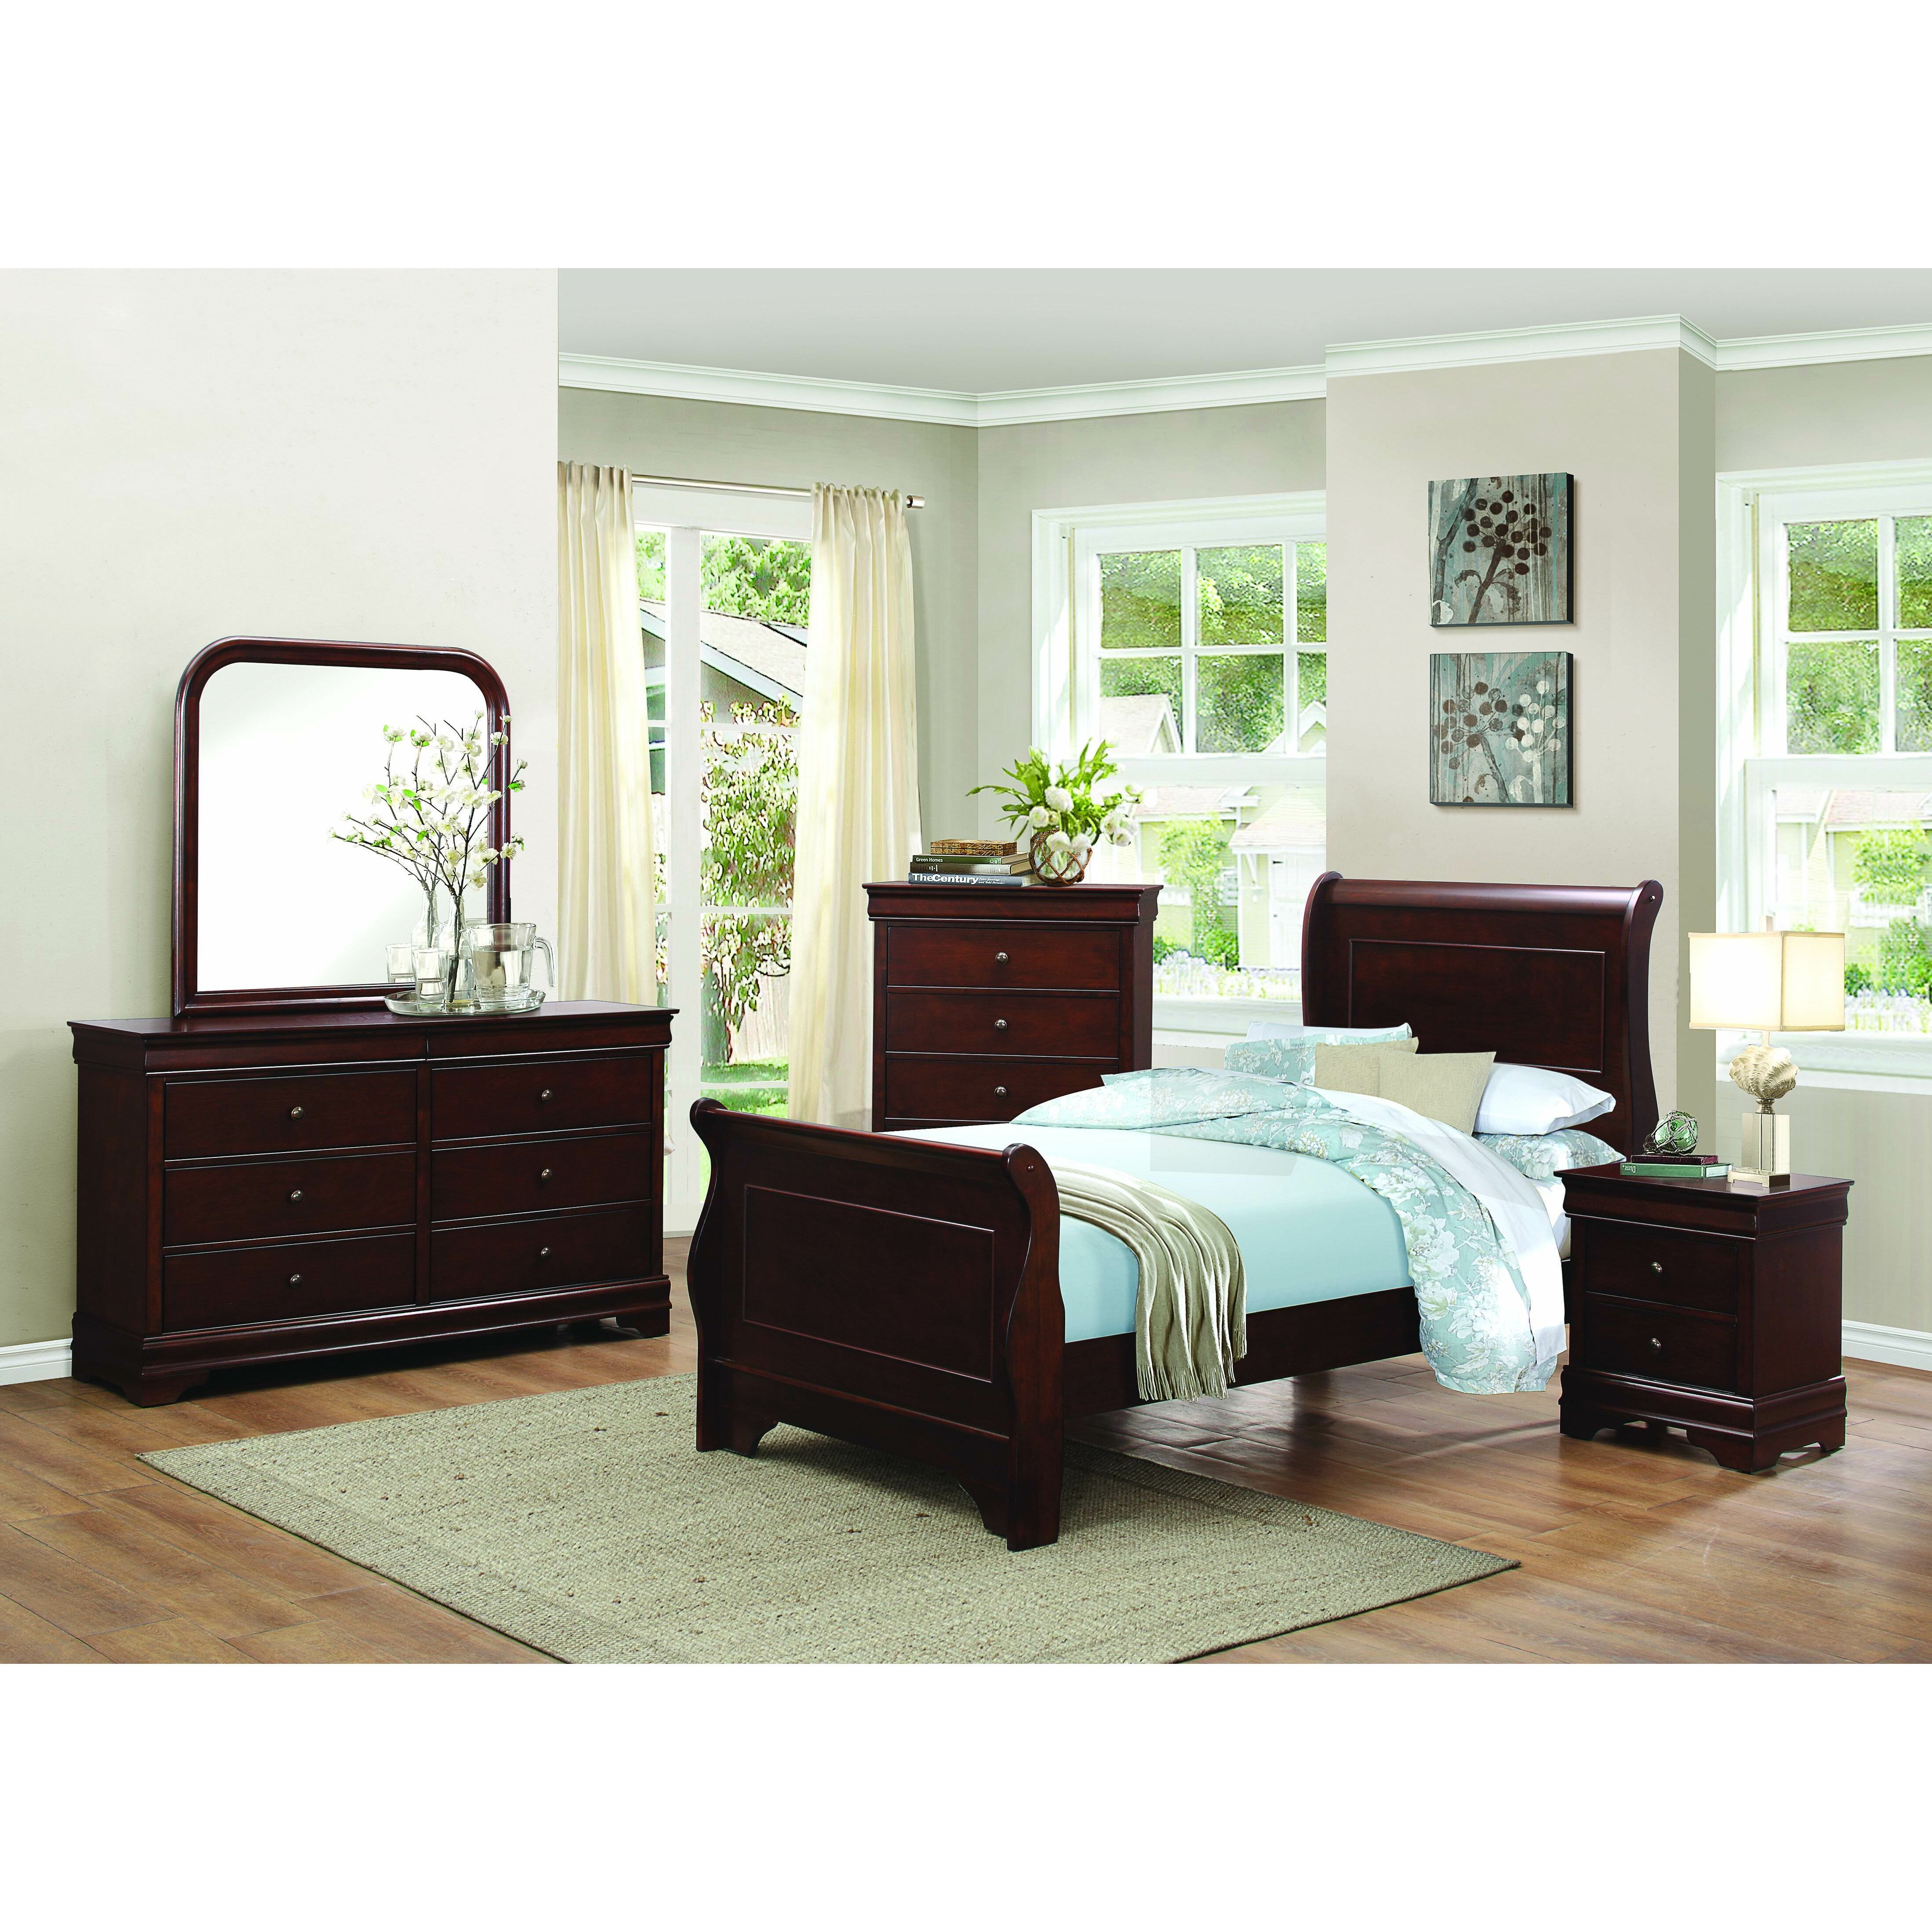 Homelegance Abbeville Sleigh Customizable Bedroom Set. Homelegance Abbeville Sleigh Customizable Bedroom Set   Reviews